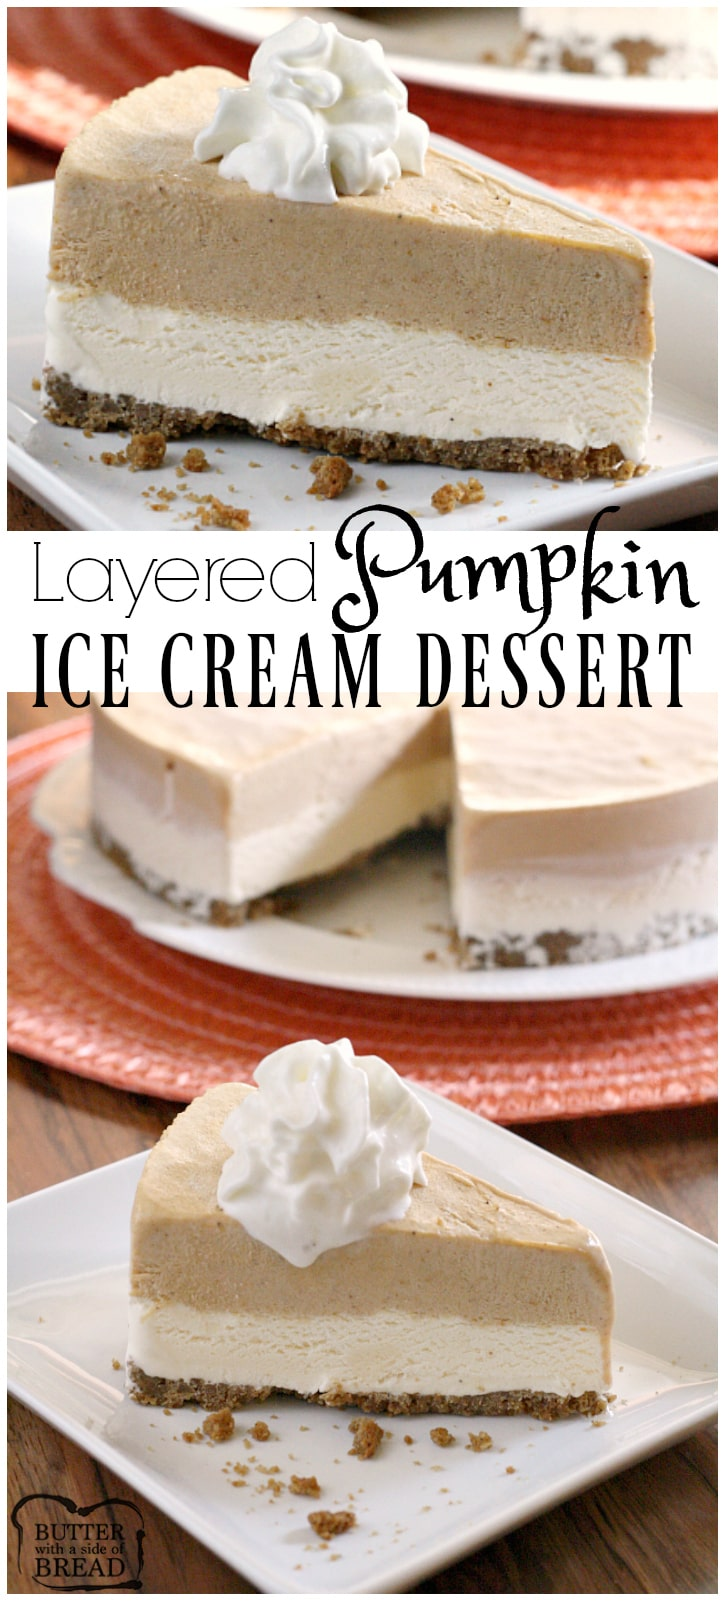 Layered Pumpkin Ice Cream Dessert - Butter With a Side of Bread